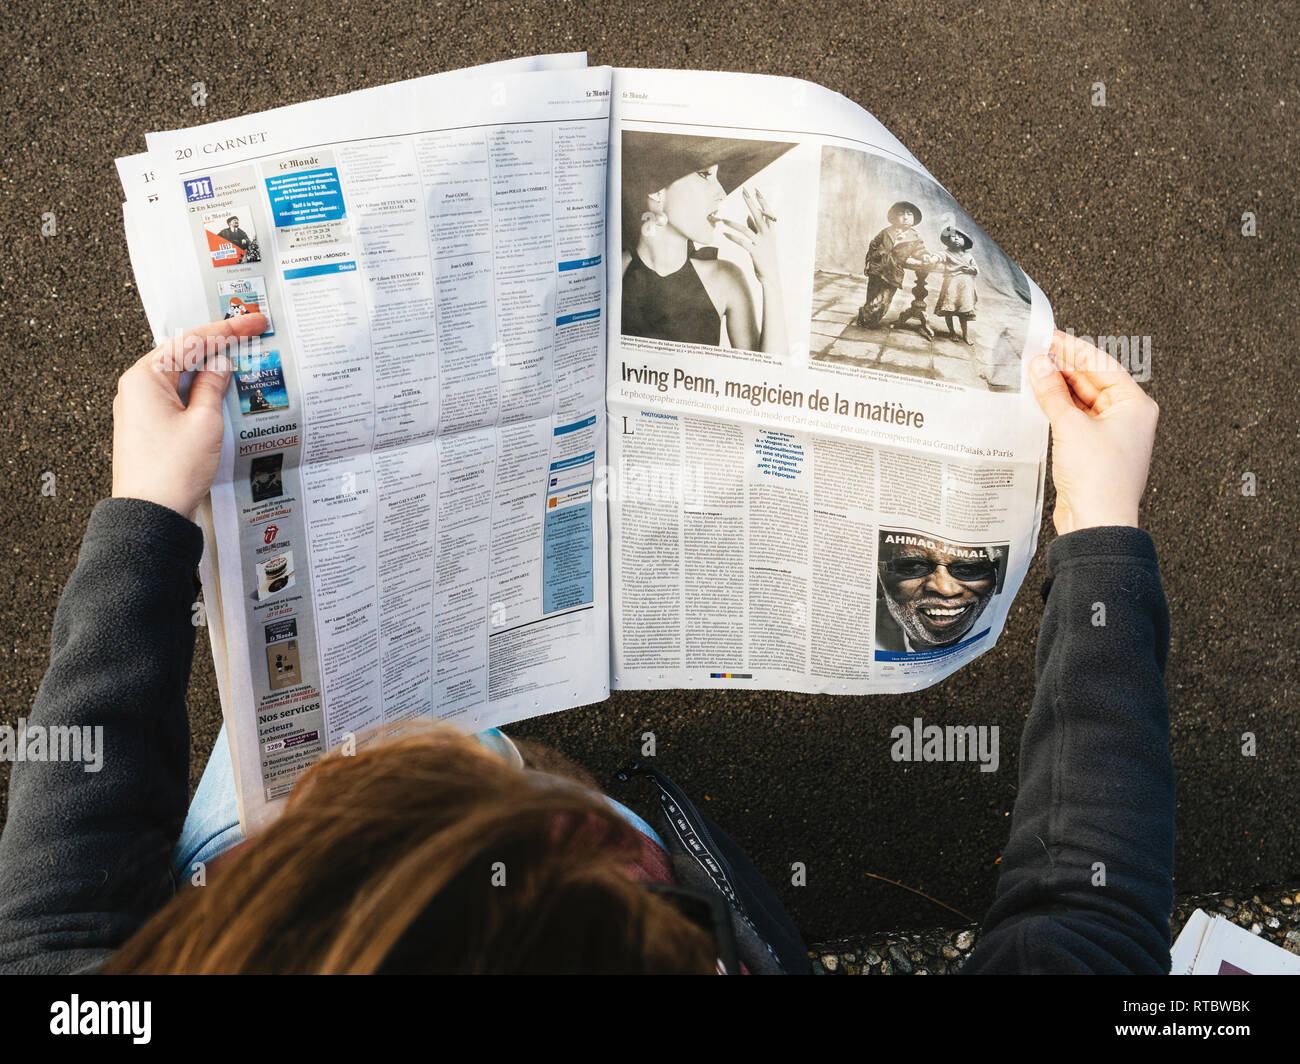 PARIS, FRANCE - SEP 25, 2017: Woman reading international newspaper about Irving Penn exibition at Grand Palais in Paris, France  - Stock Image